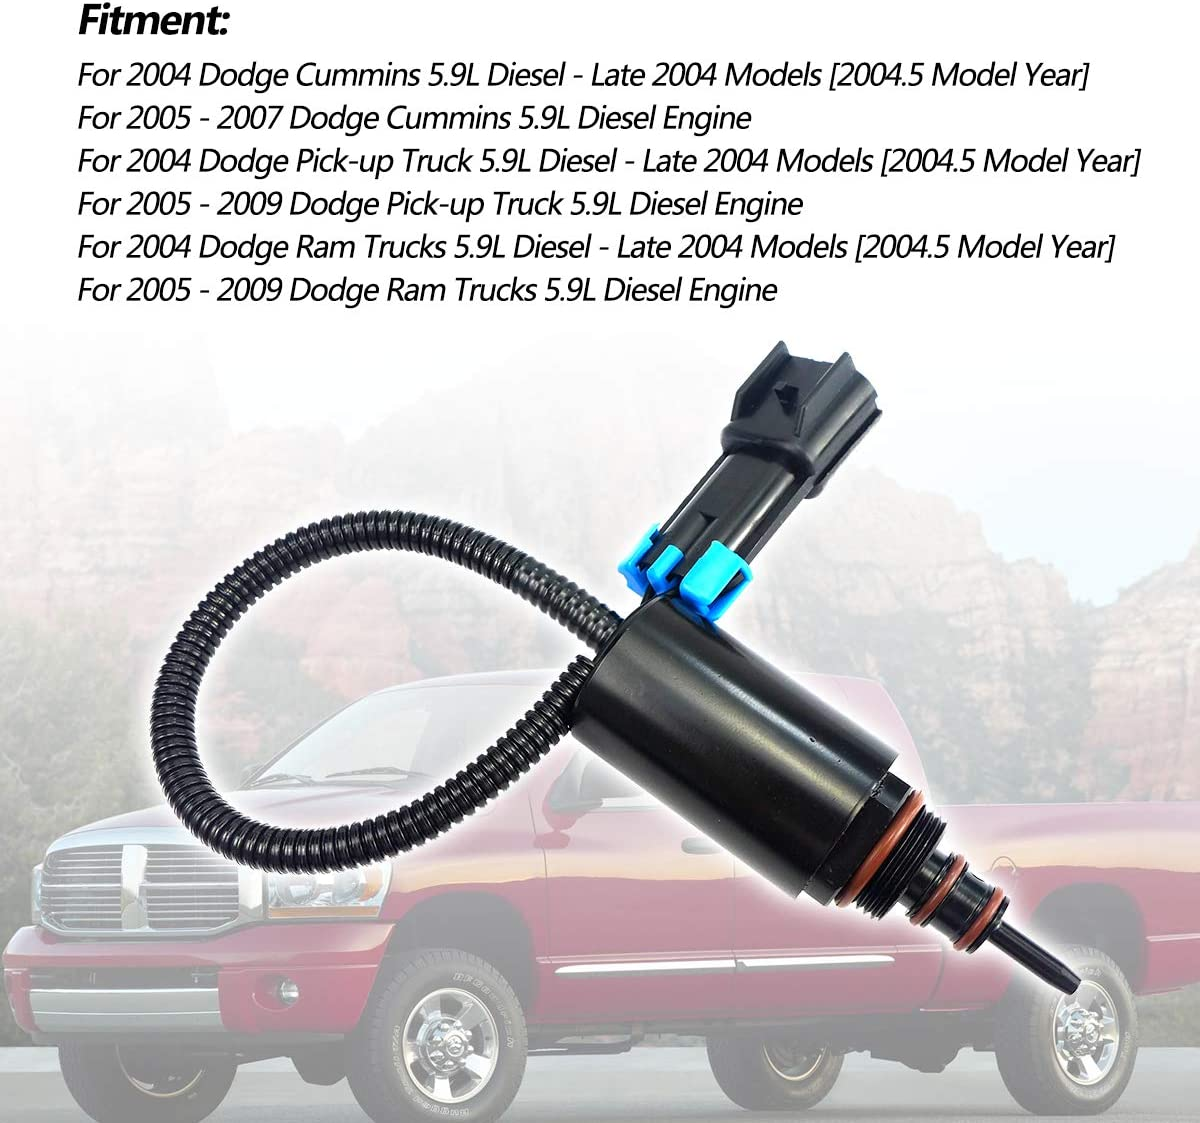 Qnbes Turbo Wastegate Control Solenoid 5140305AA 4036054 Fit for Dodge Ram 2500 3500 Cummins Diesel 5.9L 2004-2009 Turbocharger Wastegate Actuator